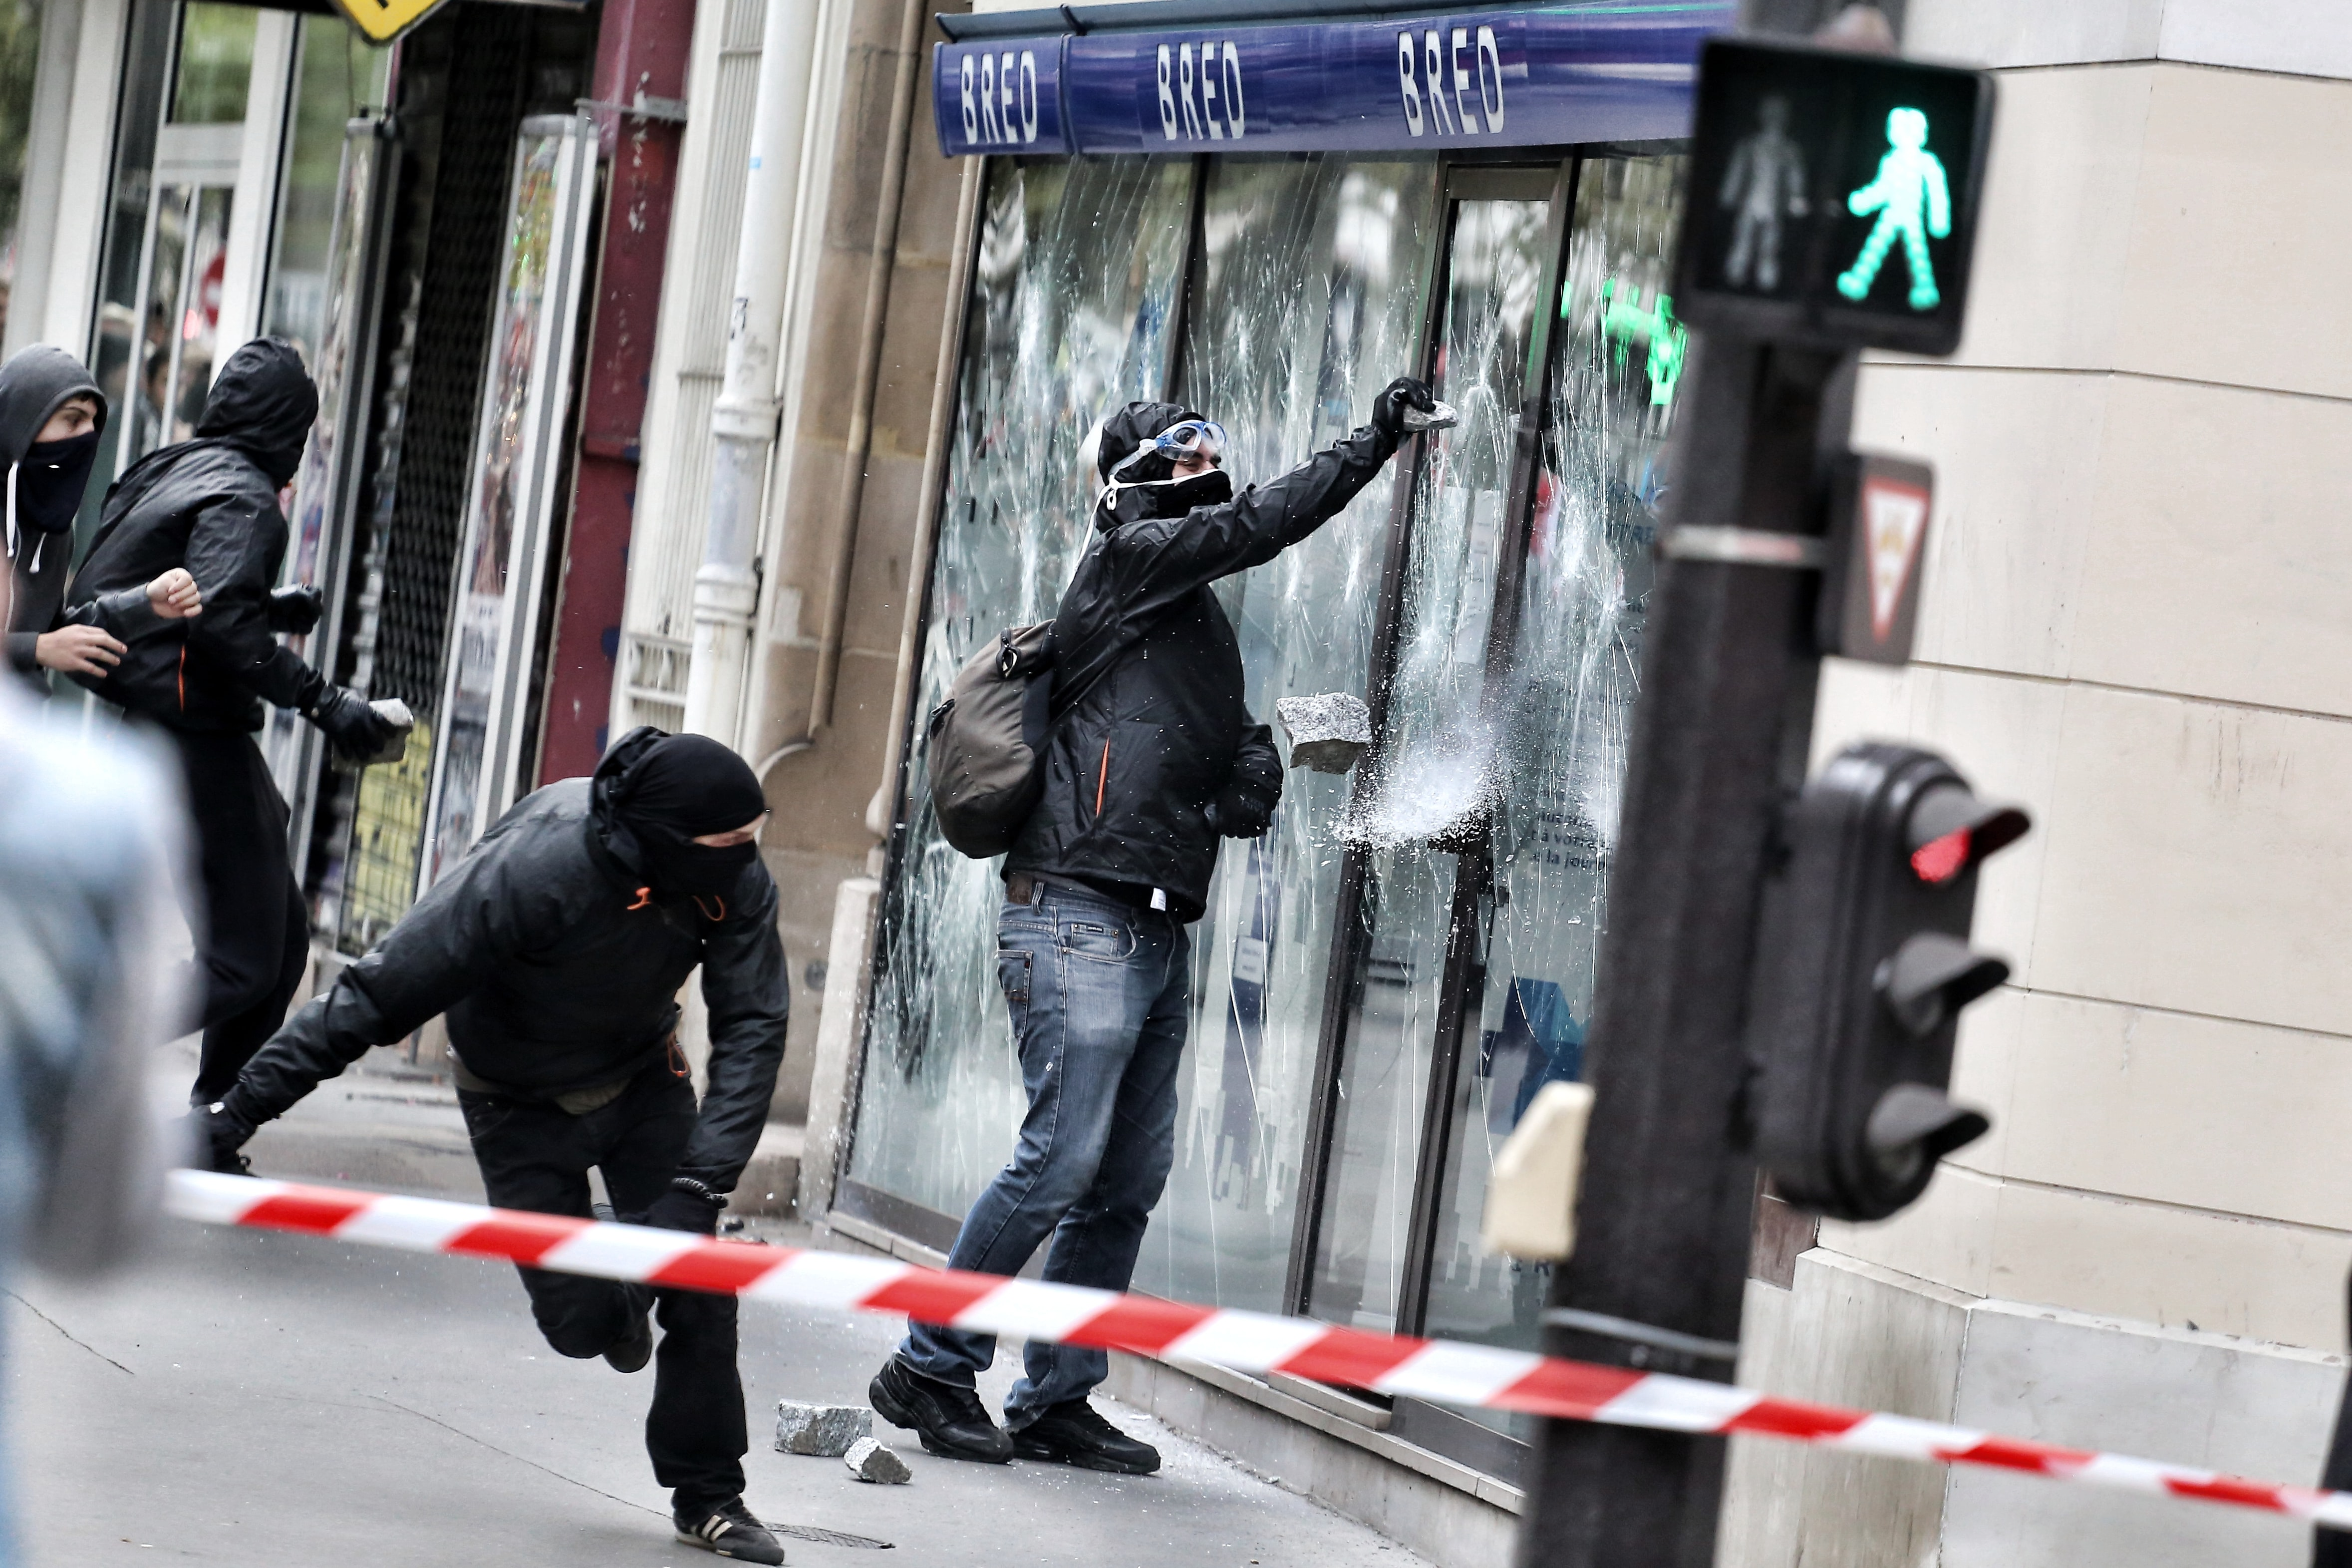 group of people breaking glass wall during daytime